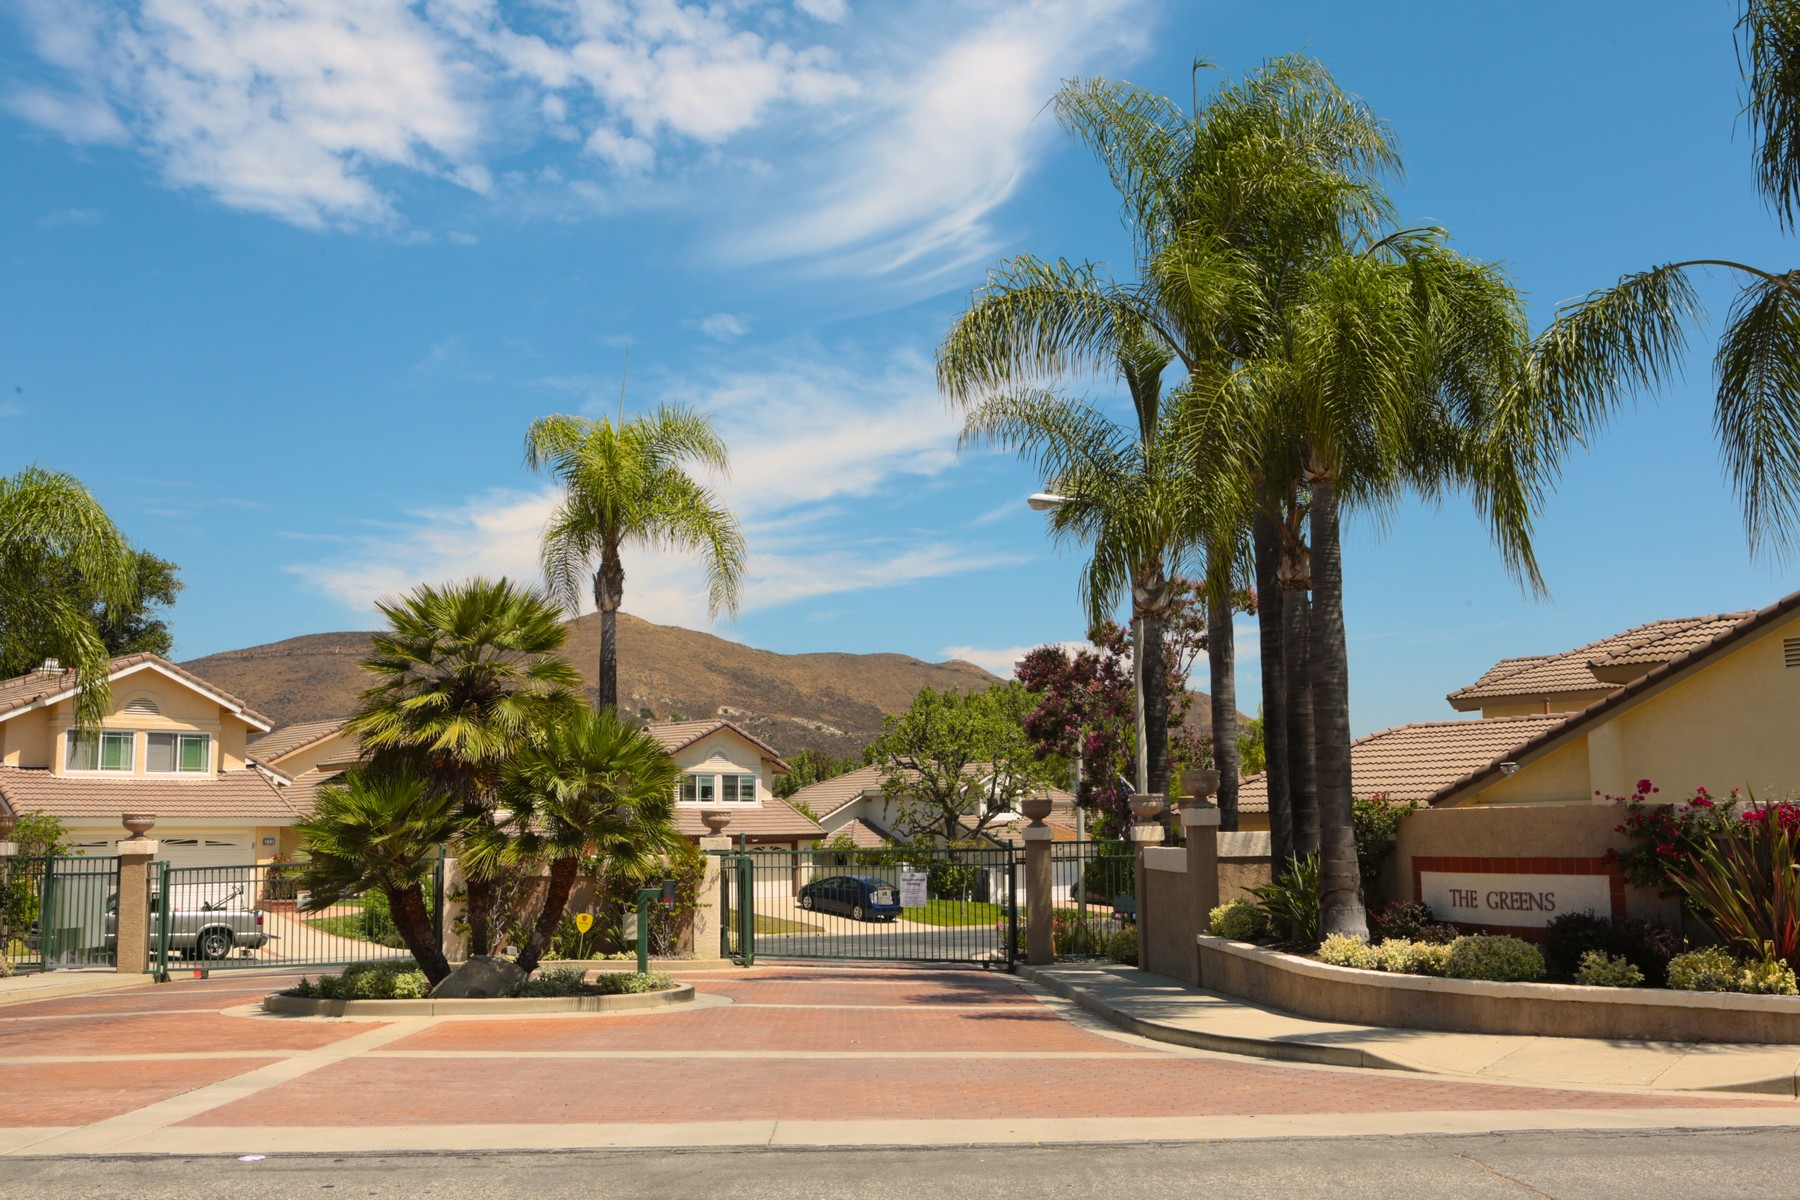 Residenza monofamiliare in vendita in 553 Fairfield Road, Simi Valley, California ,93065